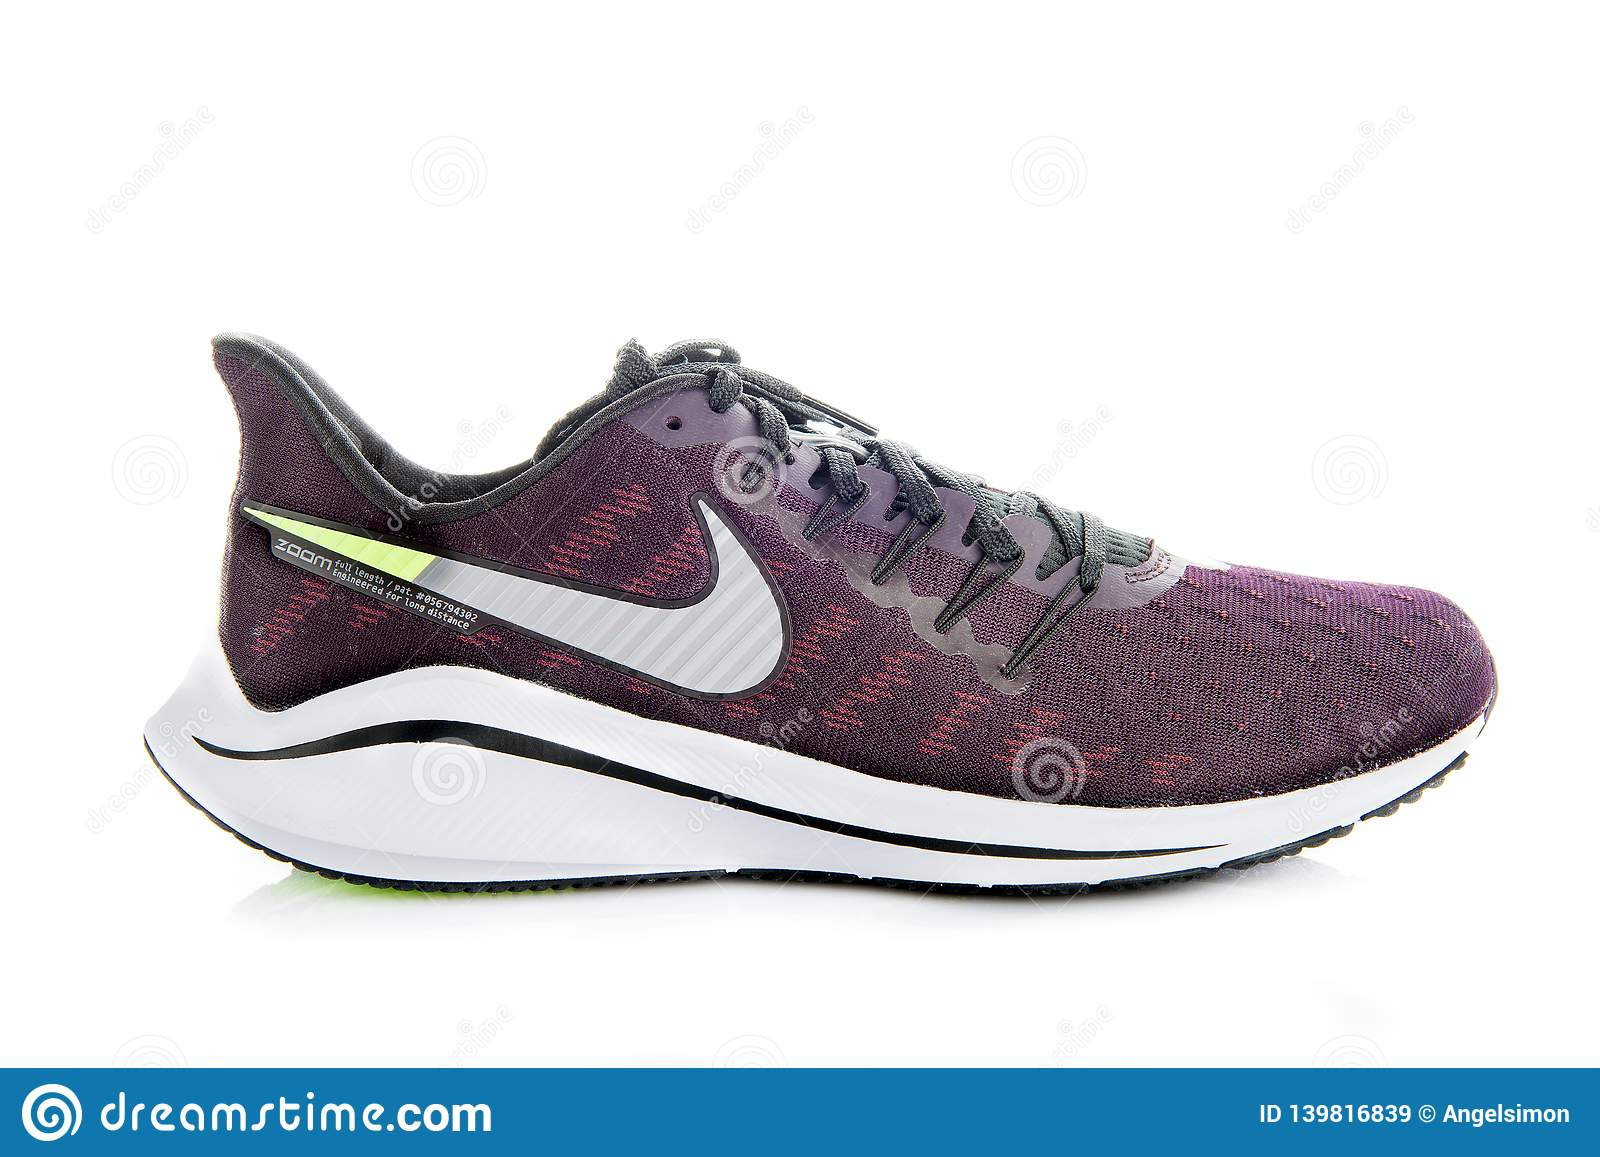 72e5a576 Prodct shoot of Nike air zoom vomero 14 running shoes isolated on white  background. More similar stock images